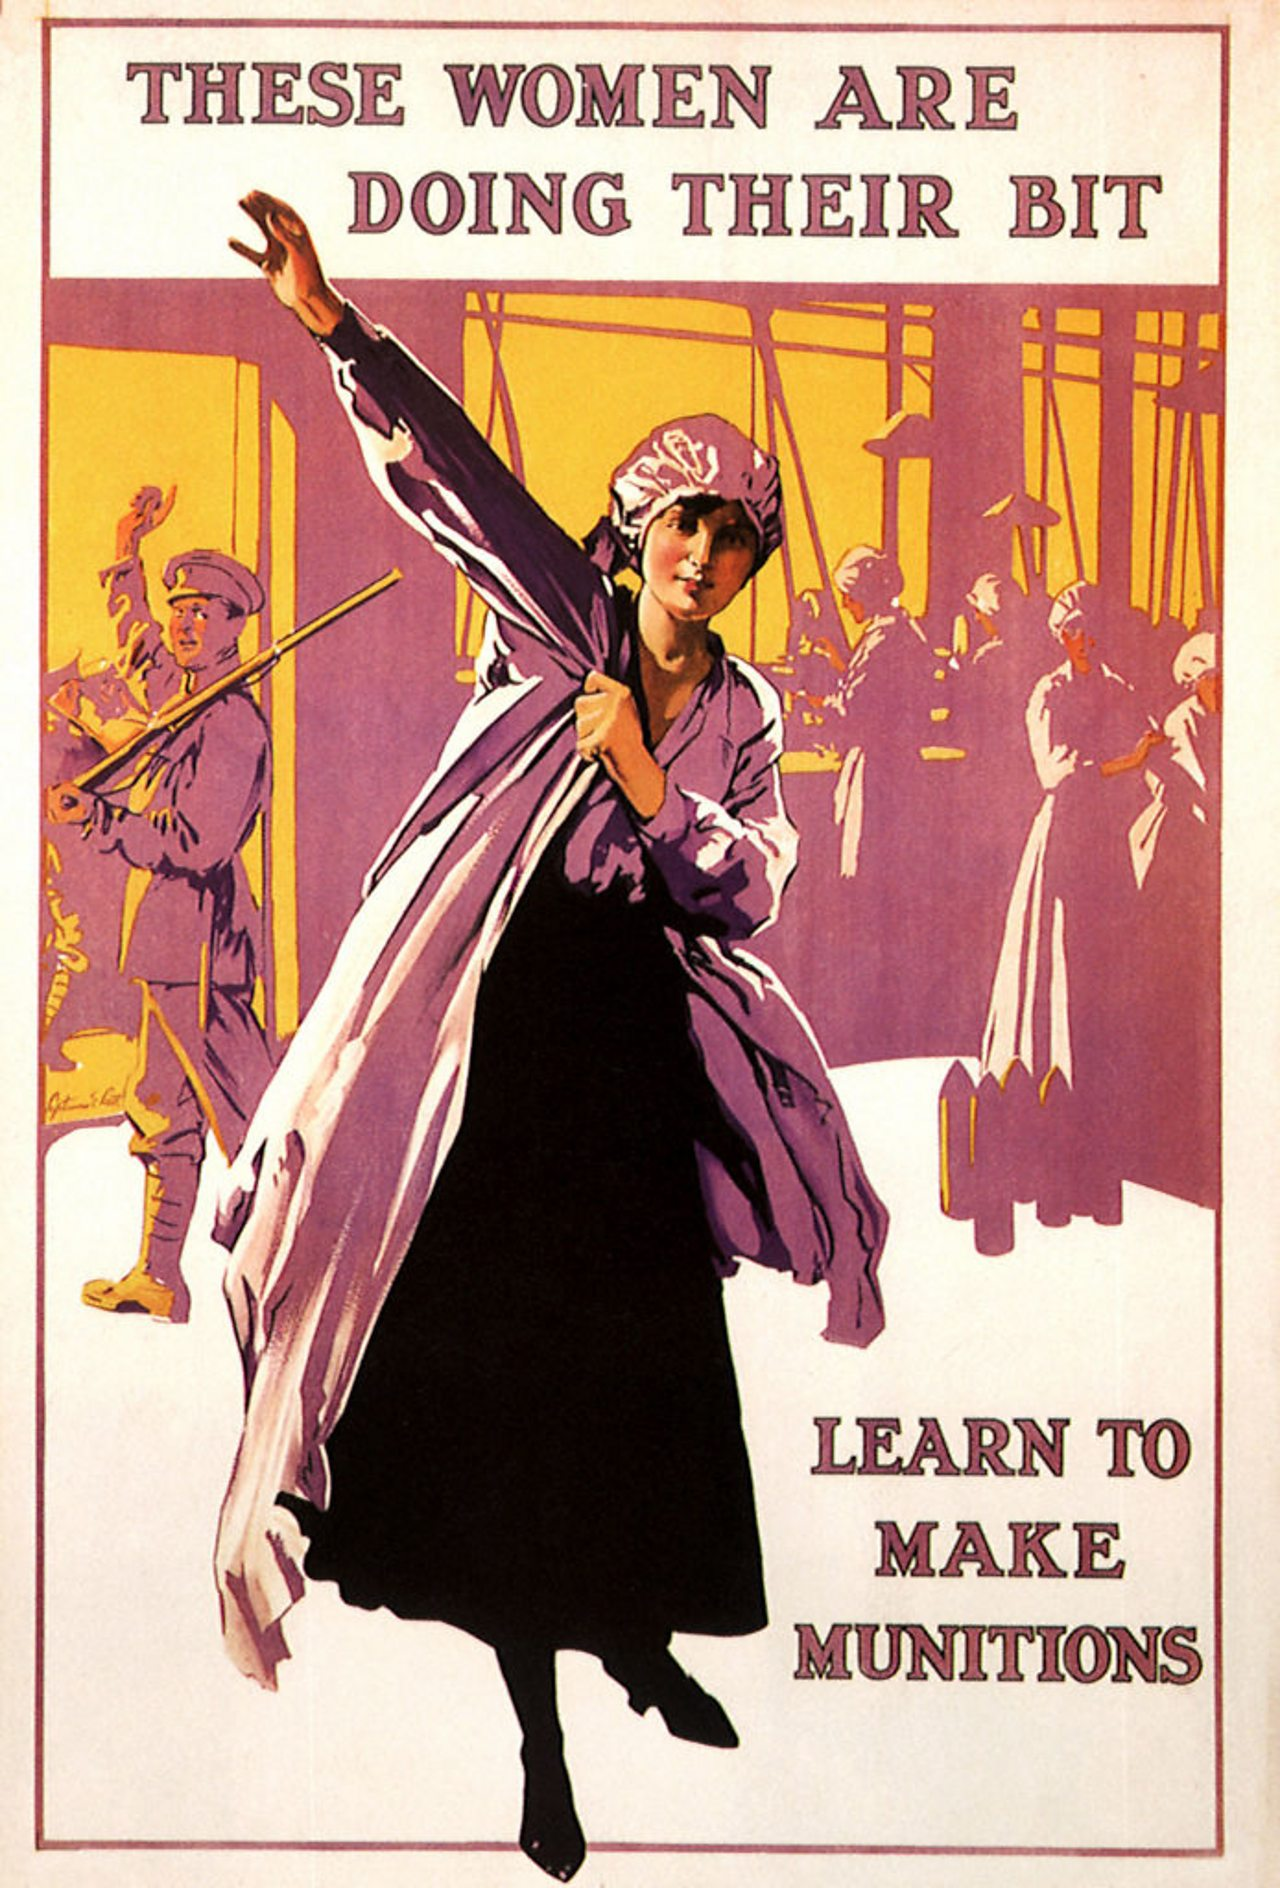 A WW1 propaganda poster encouraging women to learn to make munitions